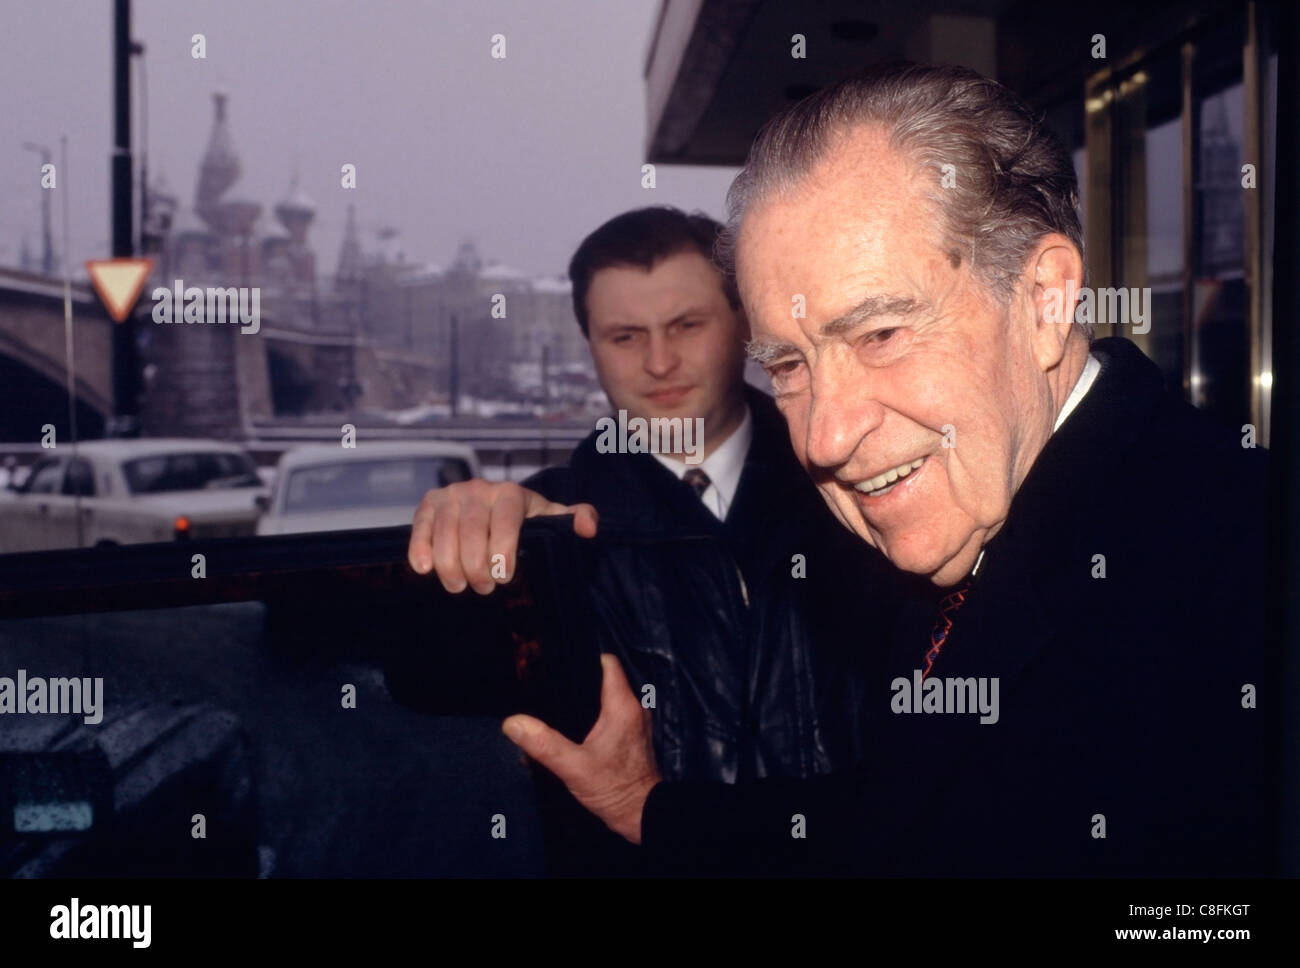 Former U.S. President Richard Nixon leaving his hotel Near the Kremlin in Moscow, Russia. - Stock Image